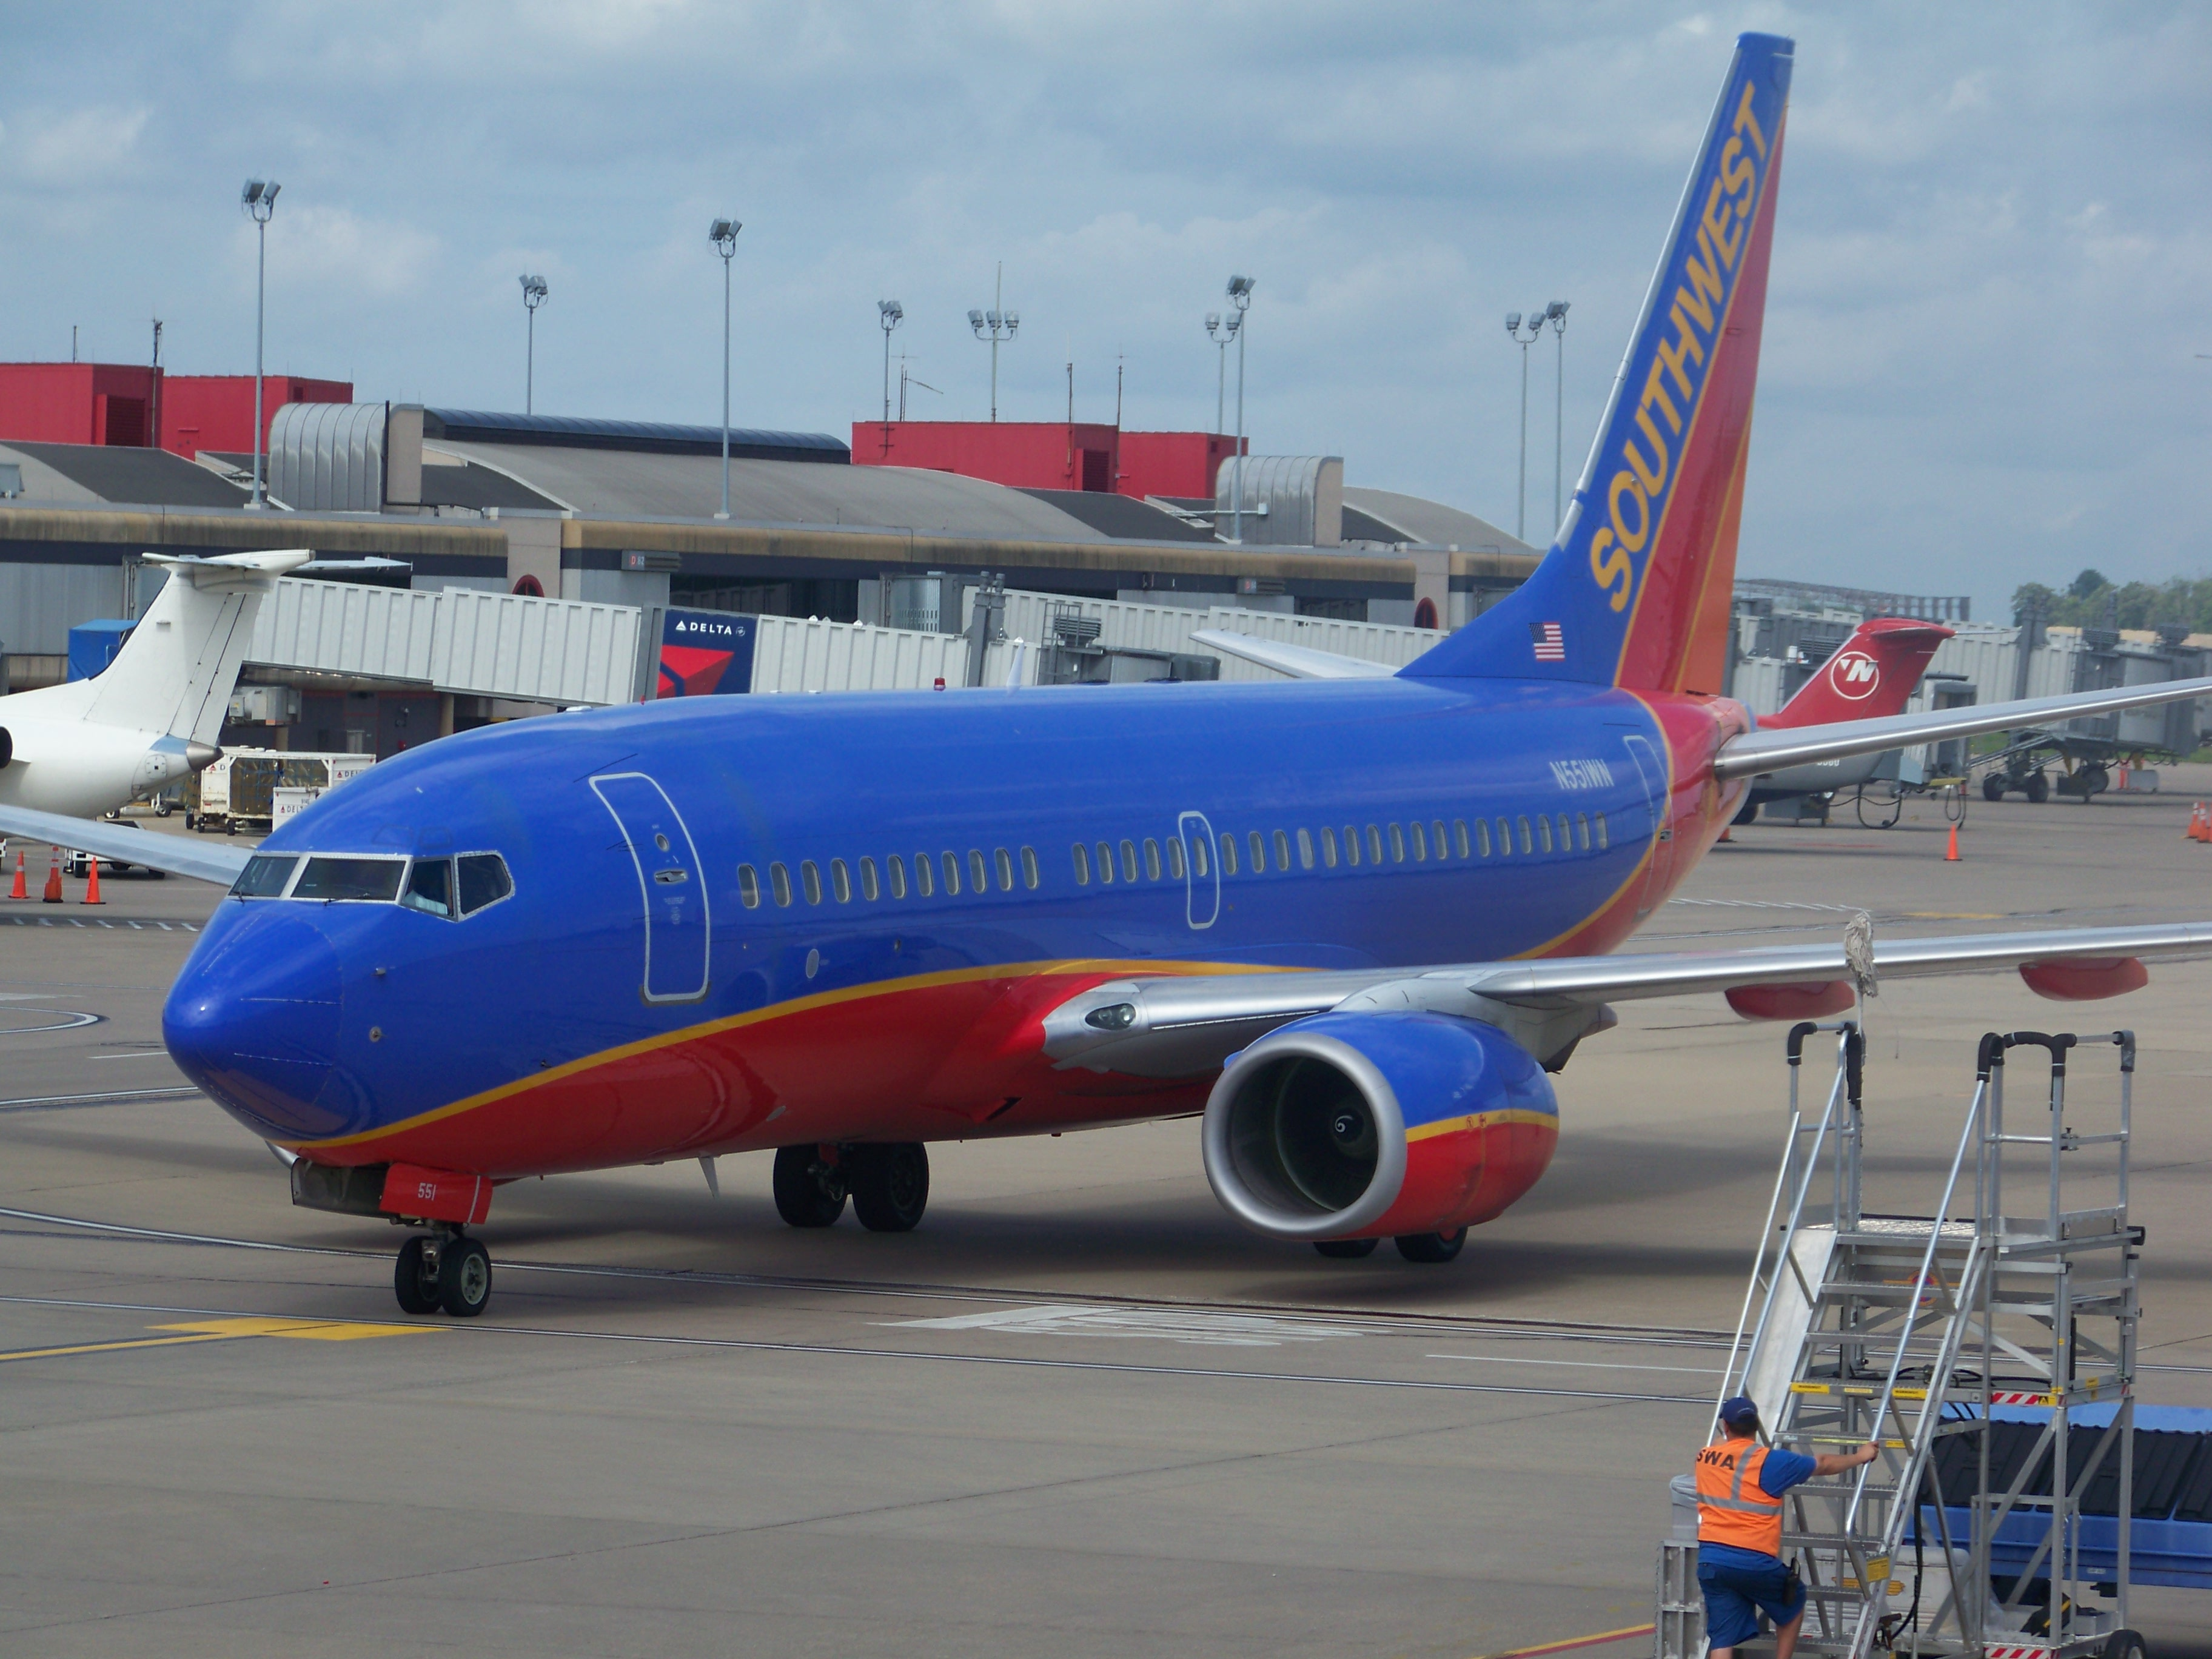 Southwest Airlines Boeing 737-700 Pulling into the gate from Orlando, FL